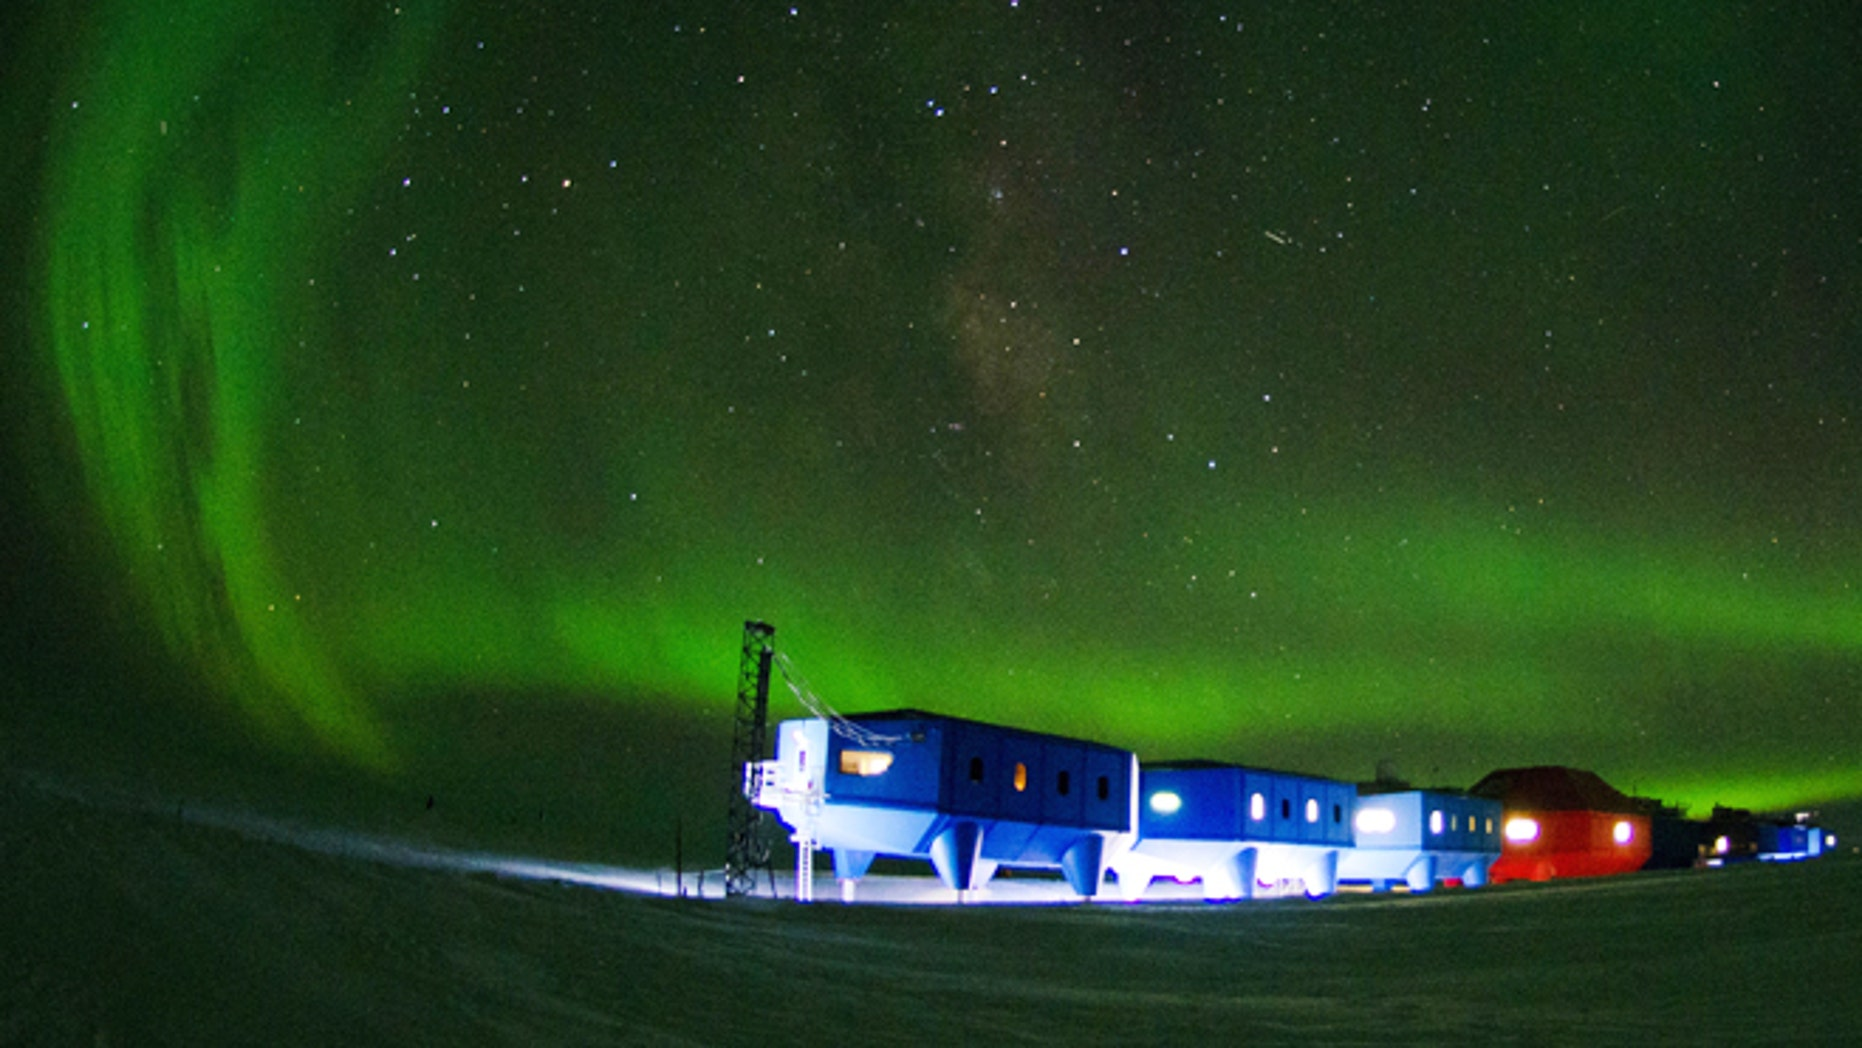 April 2, 2012: The Halley VI Research Station on the edge of the South Atlantic Ocean. Researchers say that Britain's new Antarctic base will be movable  capable of sliding across the ice on ski-clad stilts.